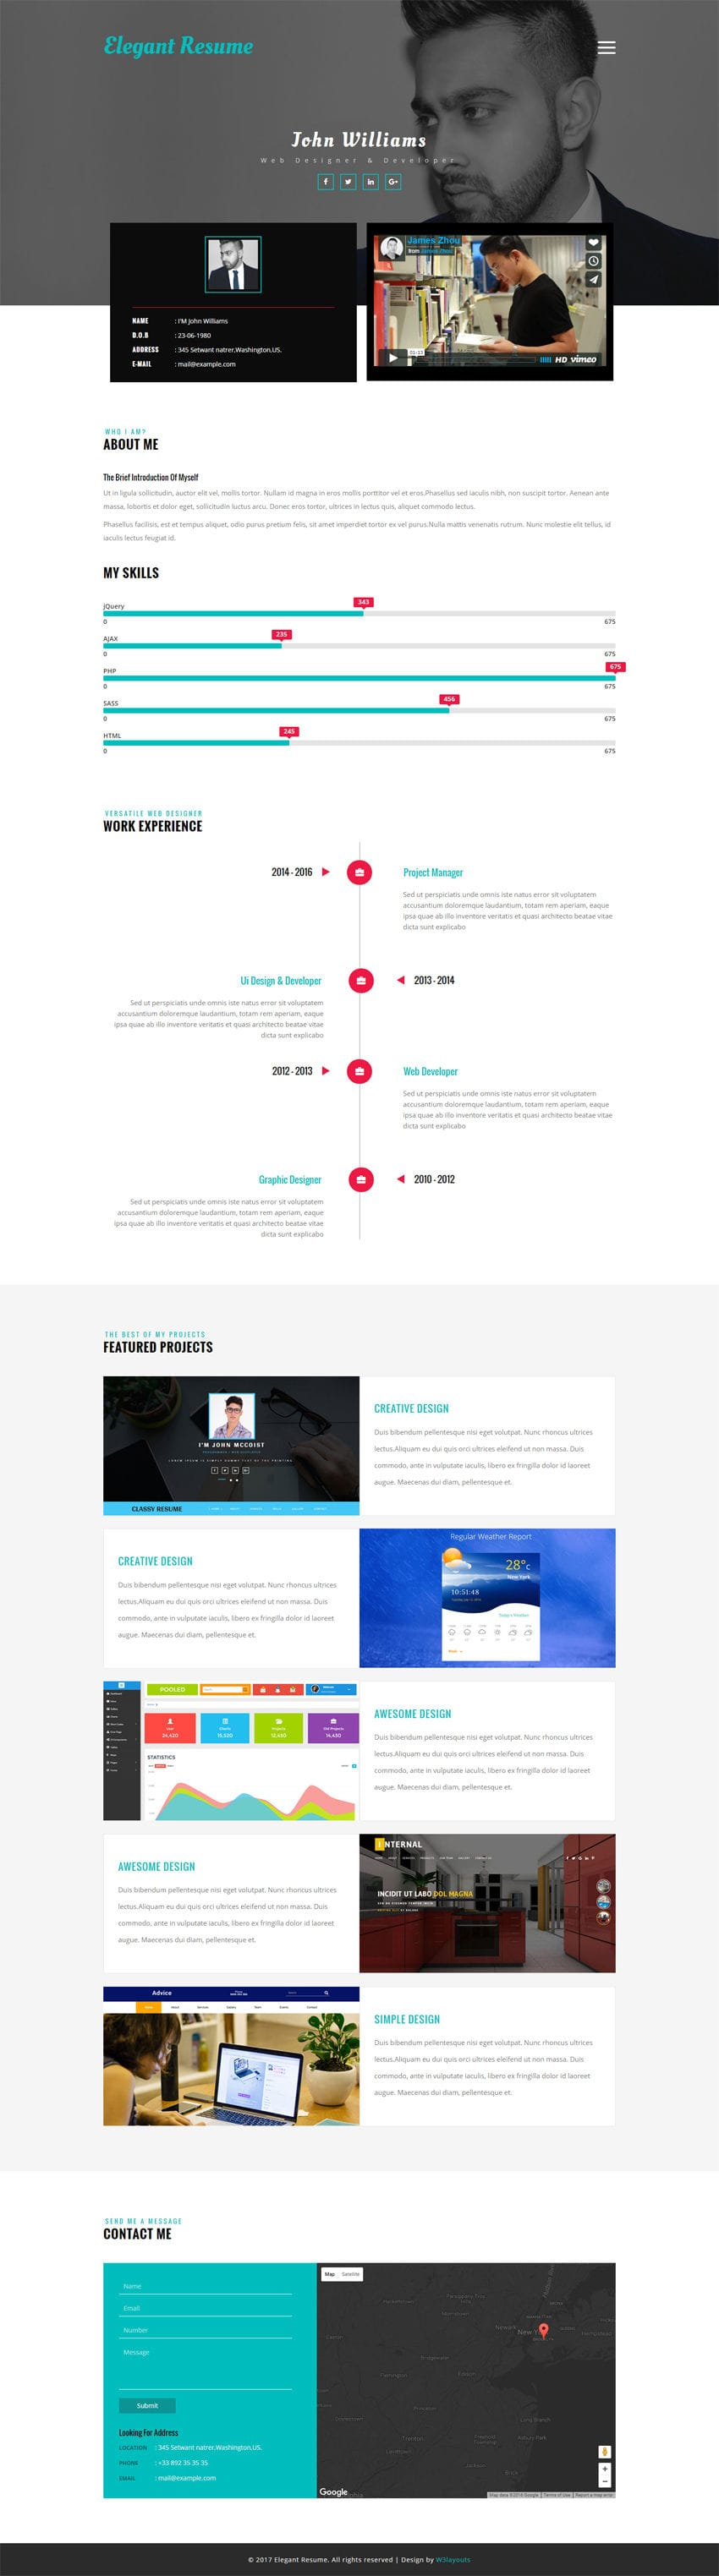 Elegant Resume A Personal Category Flat Bootstrap Responsive Web